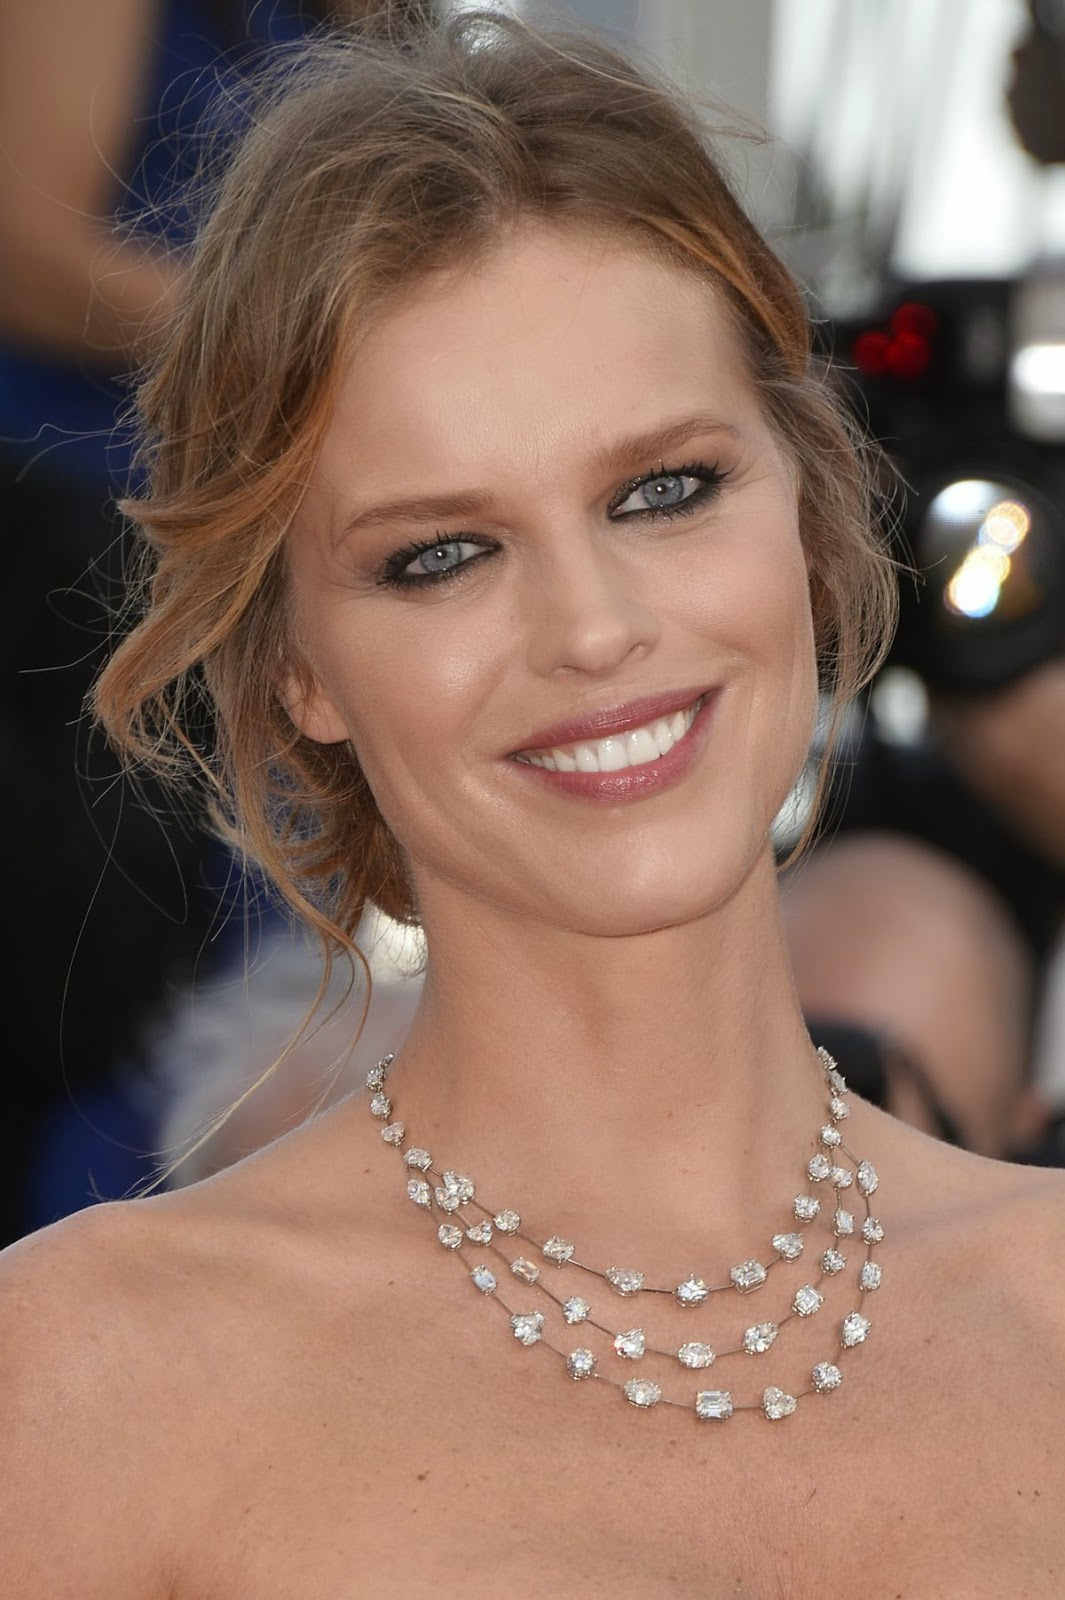 Eva Herzigova Beauty Pics - Eva Herzigova Net Worth, Pics, Wallpapers, Career and Biography